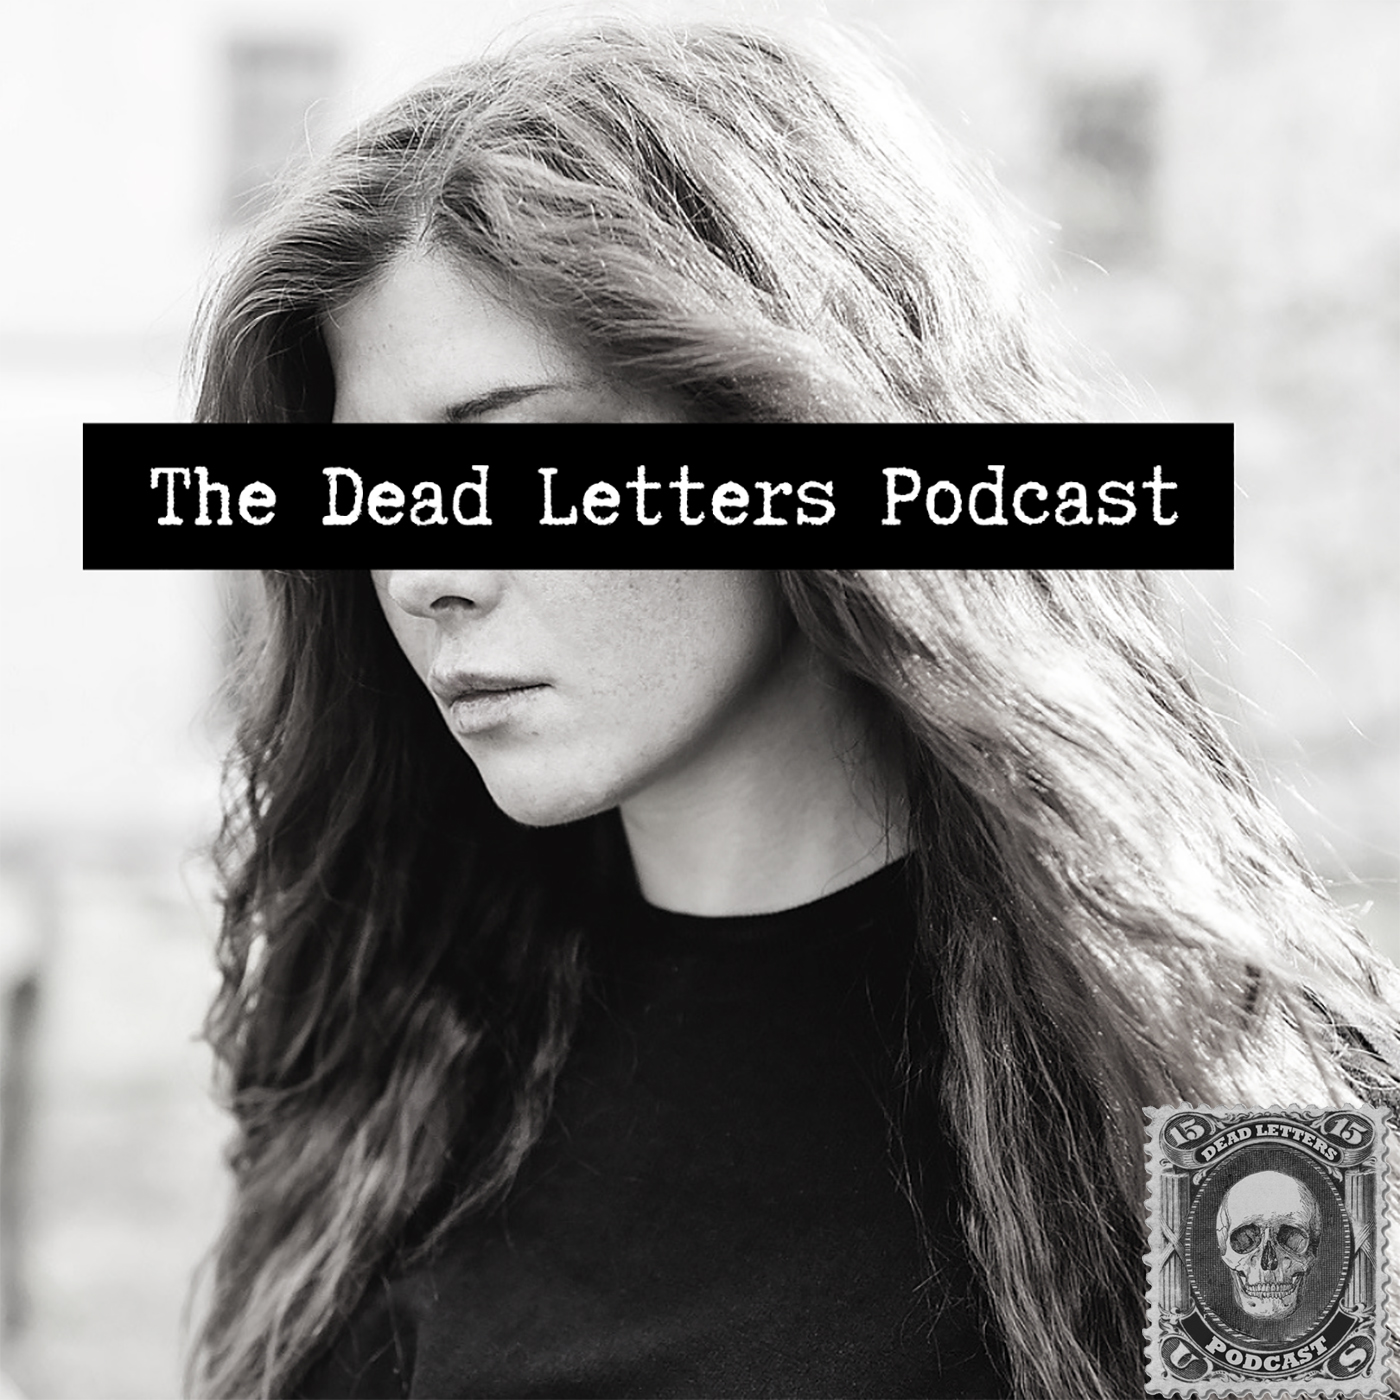 The Dead Letters Podcast Podcast